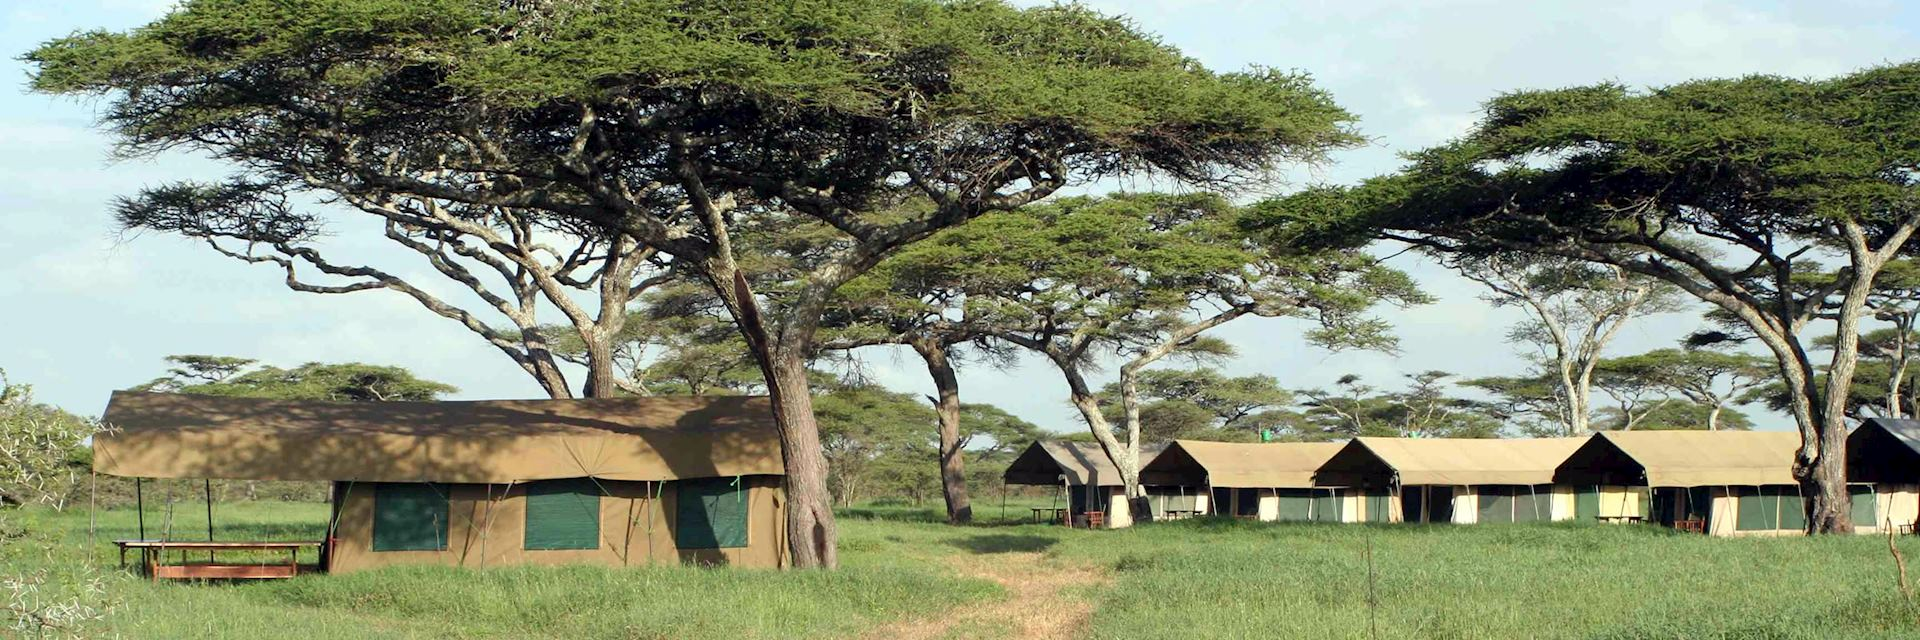 Serengeti Kati Kati Camp